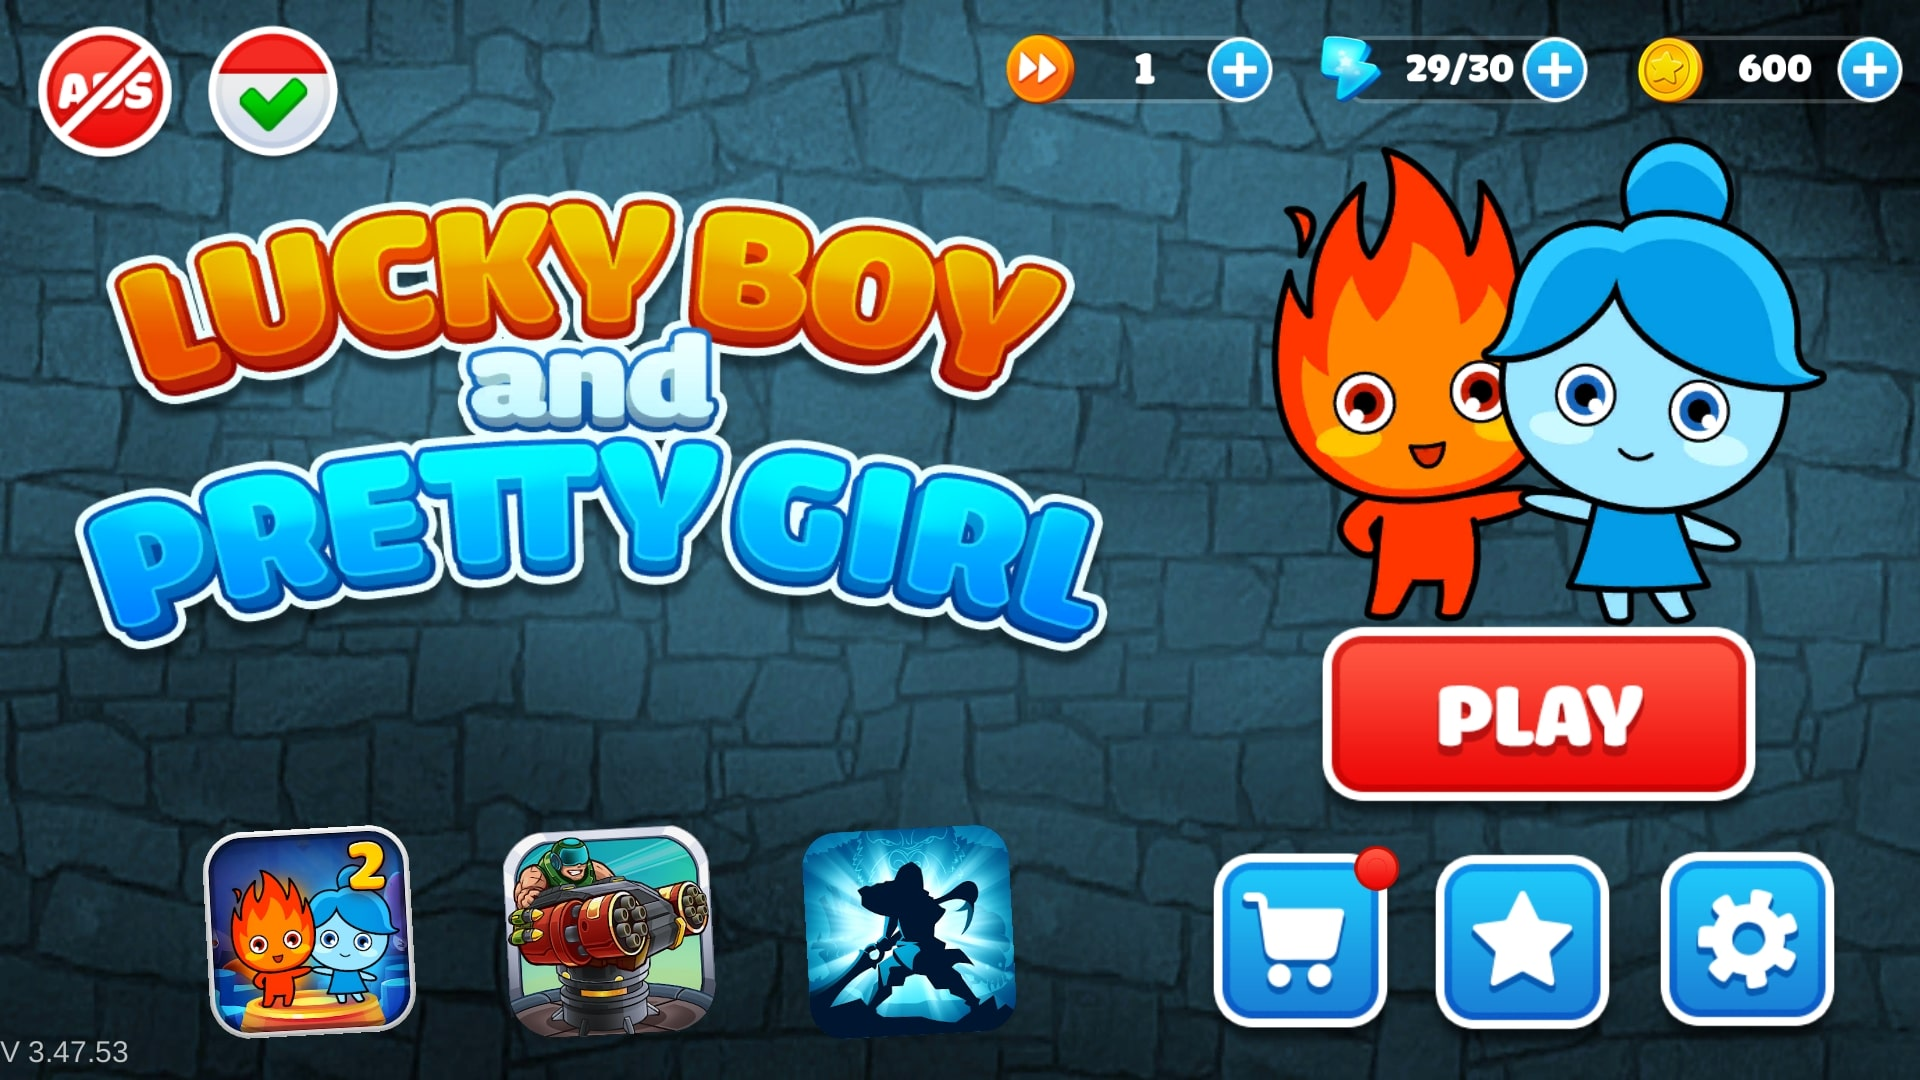 Download LuckyBoy and PrettyGirl - Crystal Temple Maze APK - For Android 7